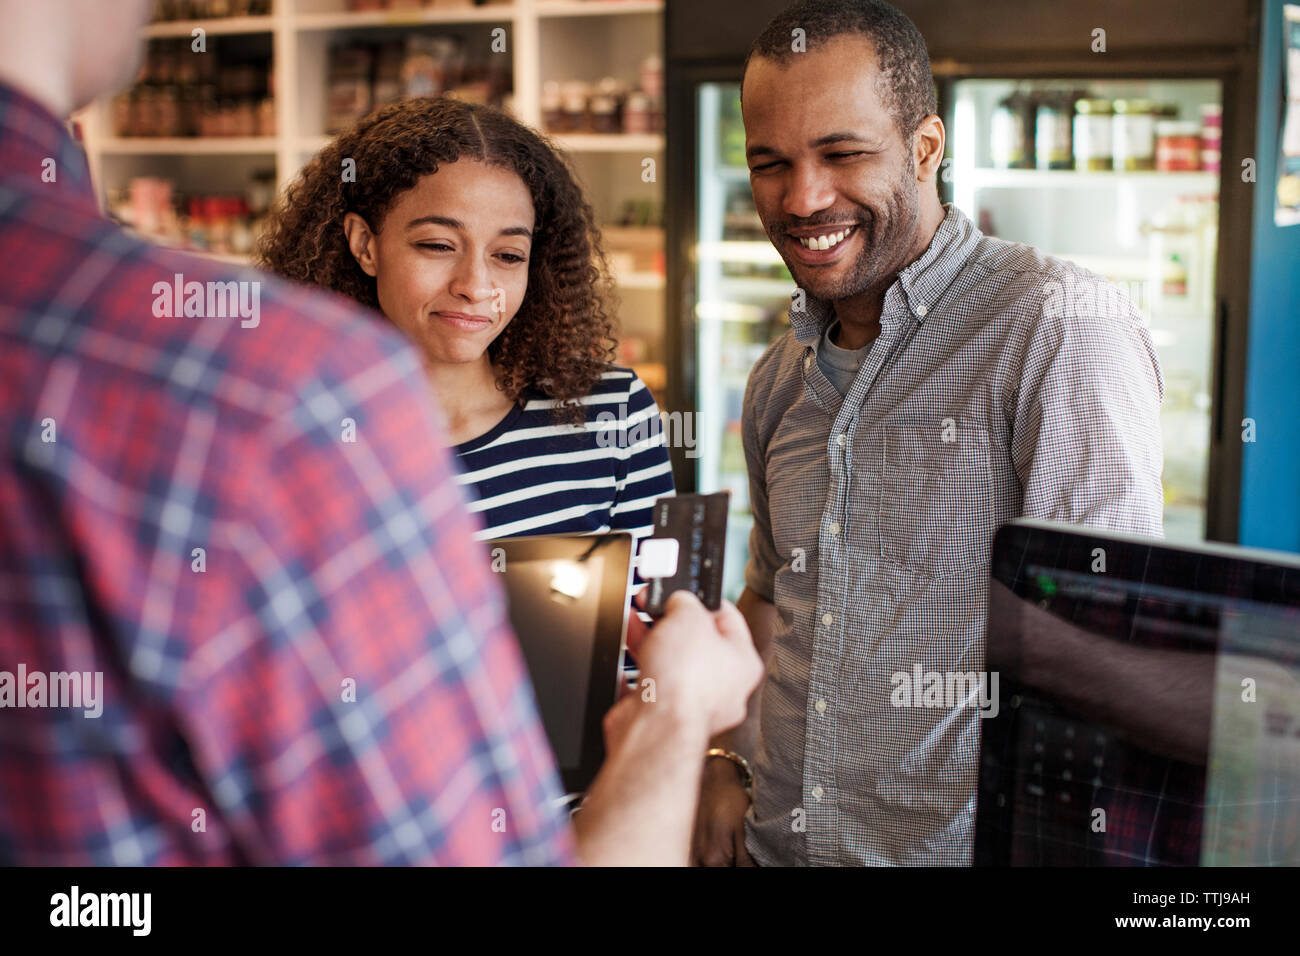 Happy couple looking at owner swiping credit card in store Stock Photo